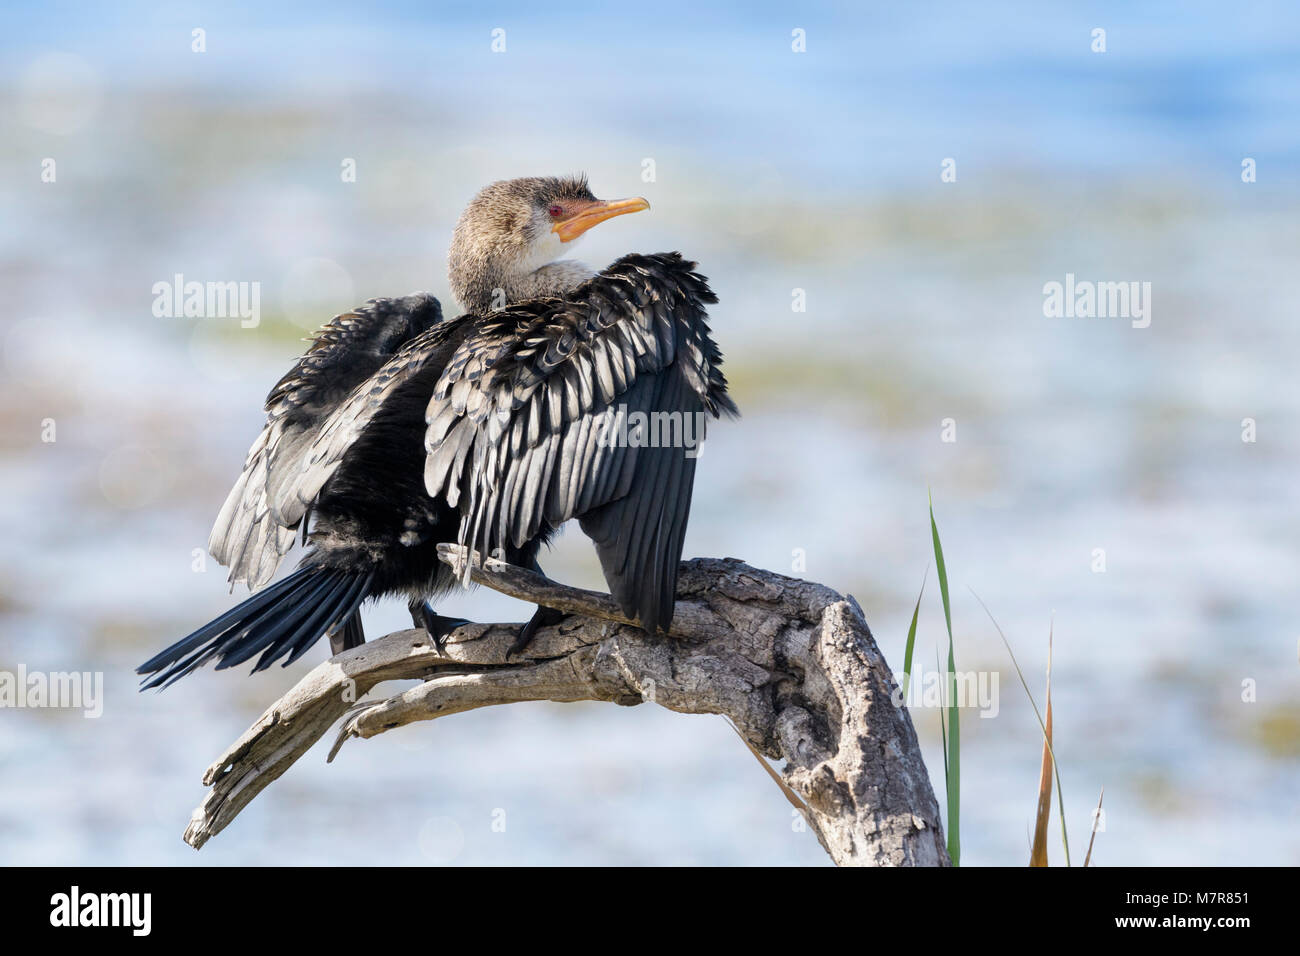 Reed cormorant (Phalacrocorax africanus), sitting on a dead tree and drying the wings, Western cape province, Wilderness - Stock Image